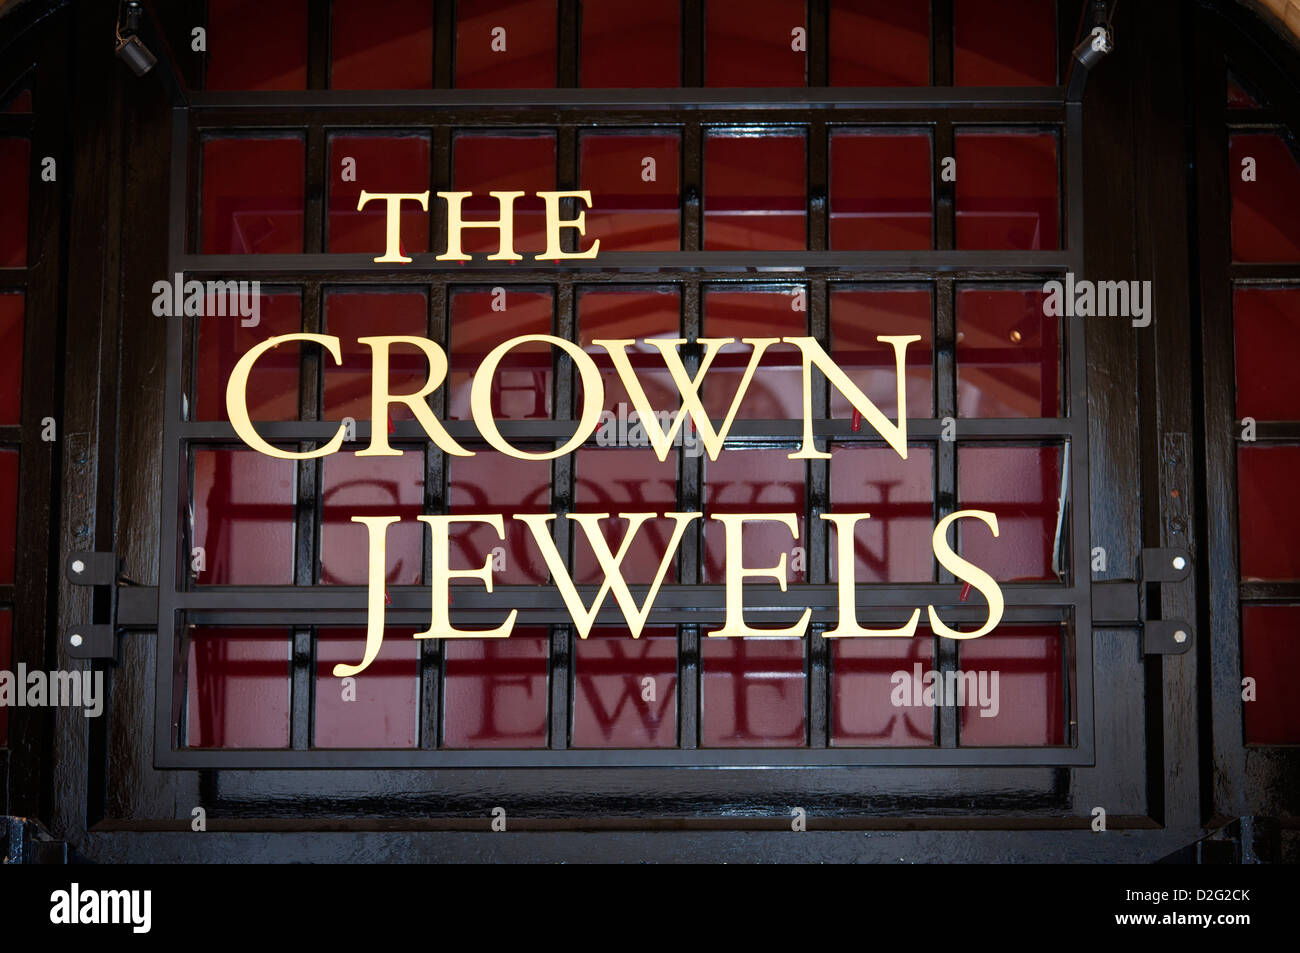 THE CROWN JEWELS sign at entrance to Jewel House, Tower of London - Stock Image